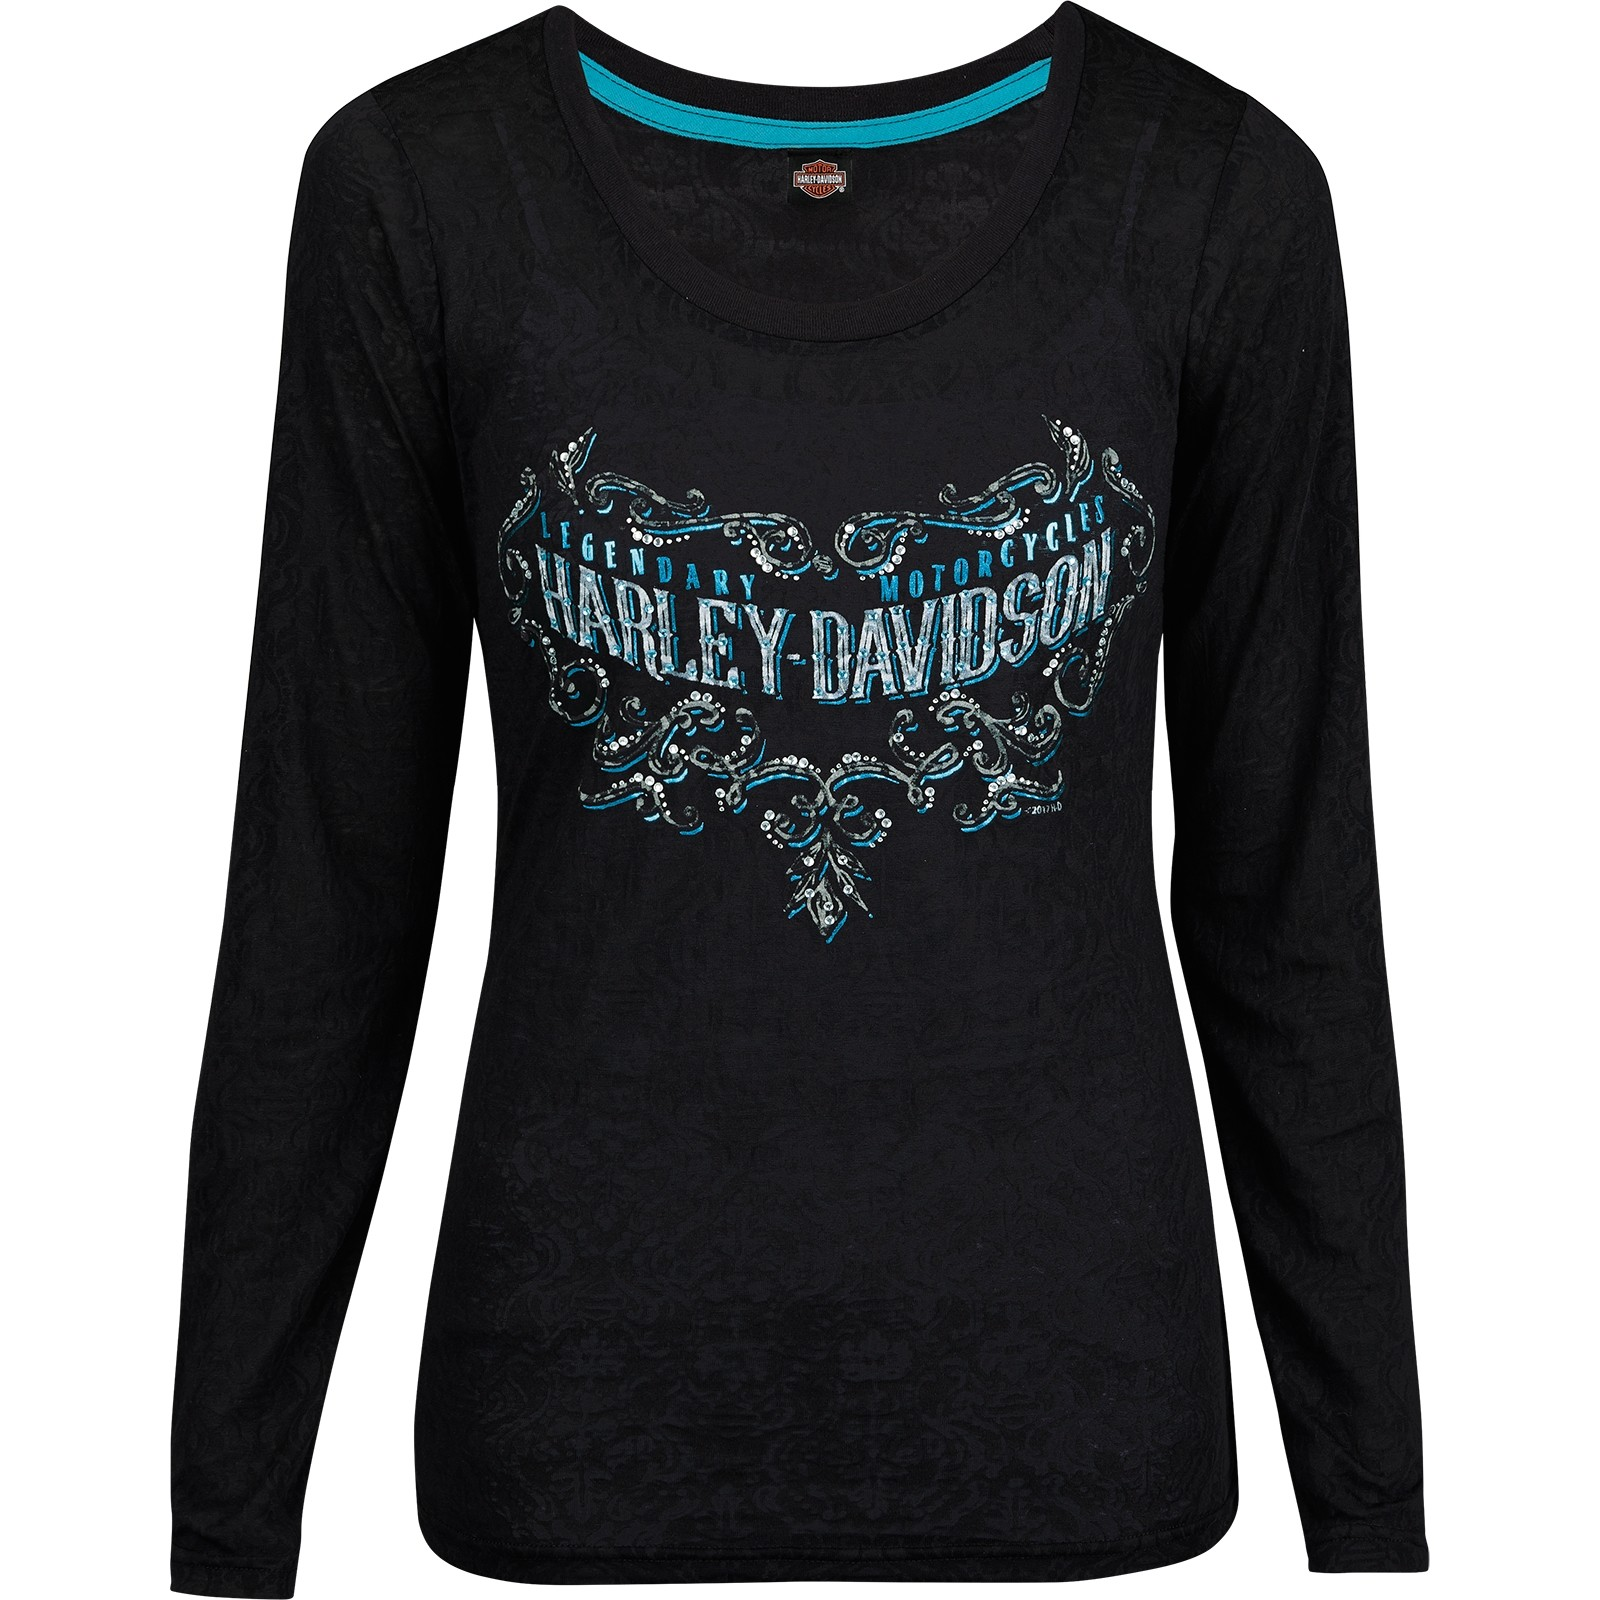 Harley-Davidson Military - Women's Black Long-Sleeve Burnout Graphic T-Shirt - USAG Yongsan | Legend Scroll